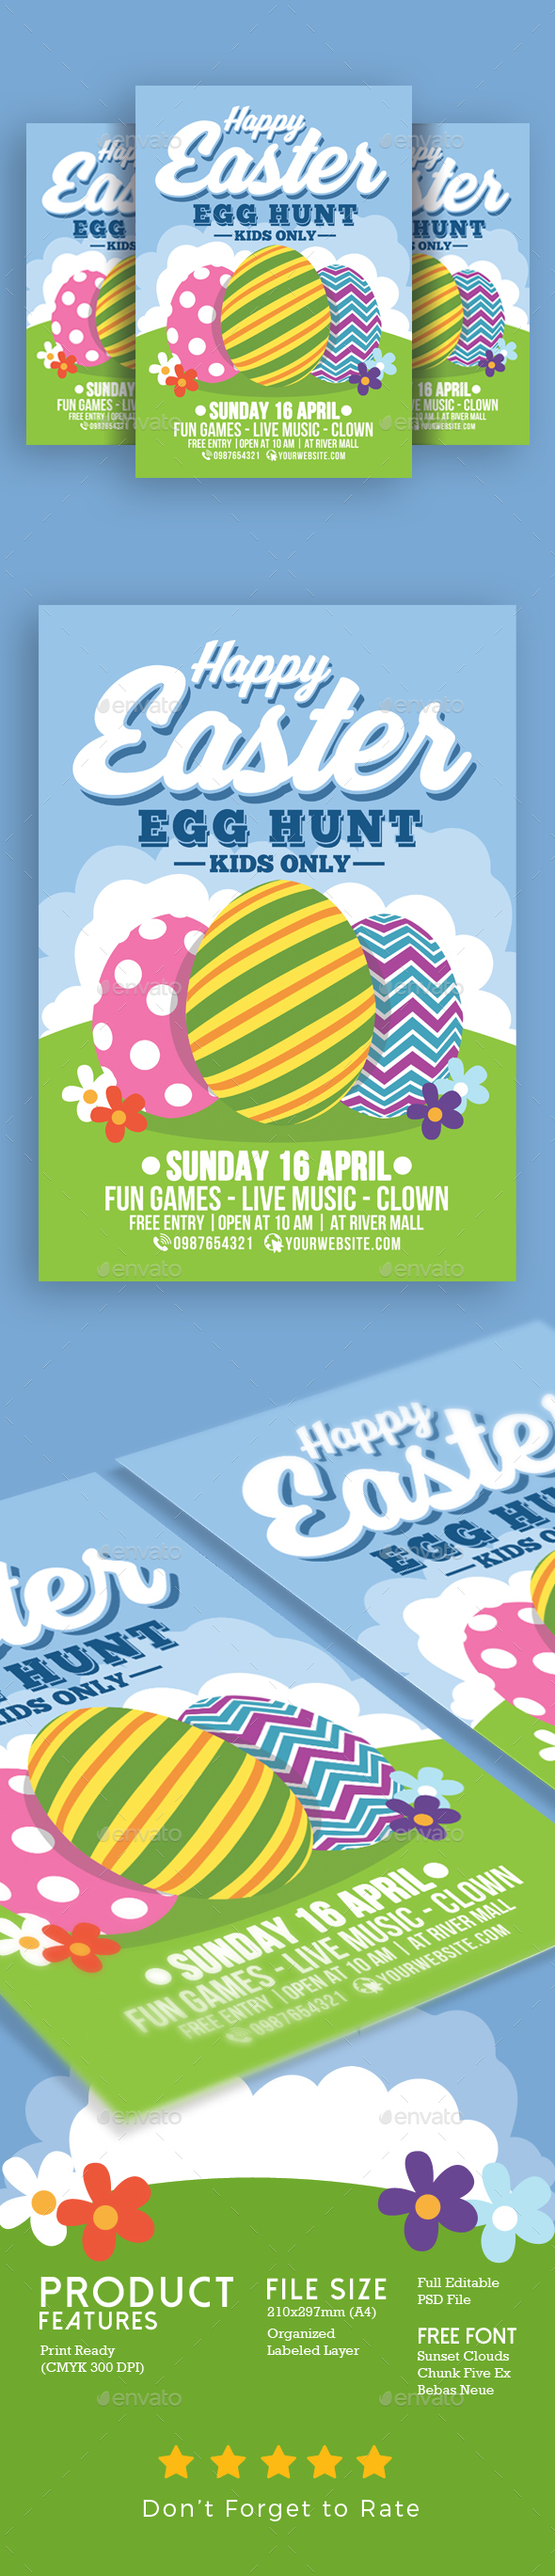 Happy Easter Egg Hunt For Kids - Events Flyers